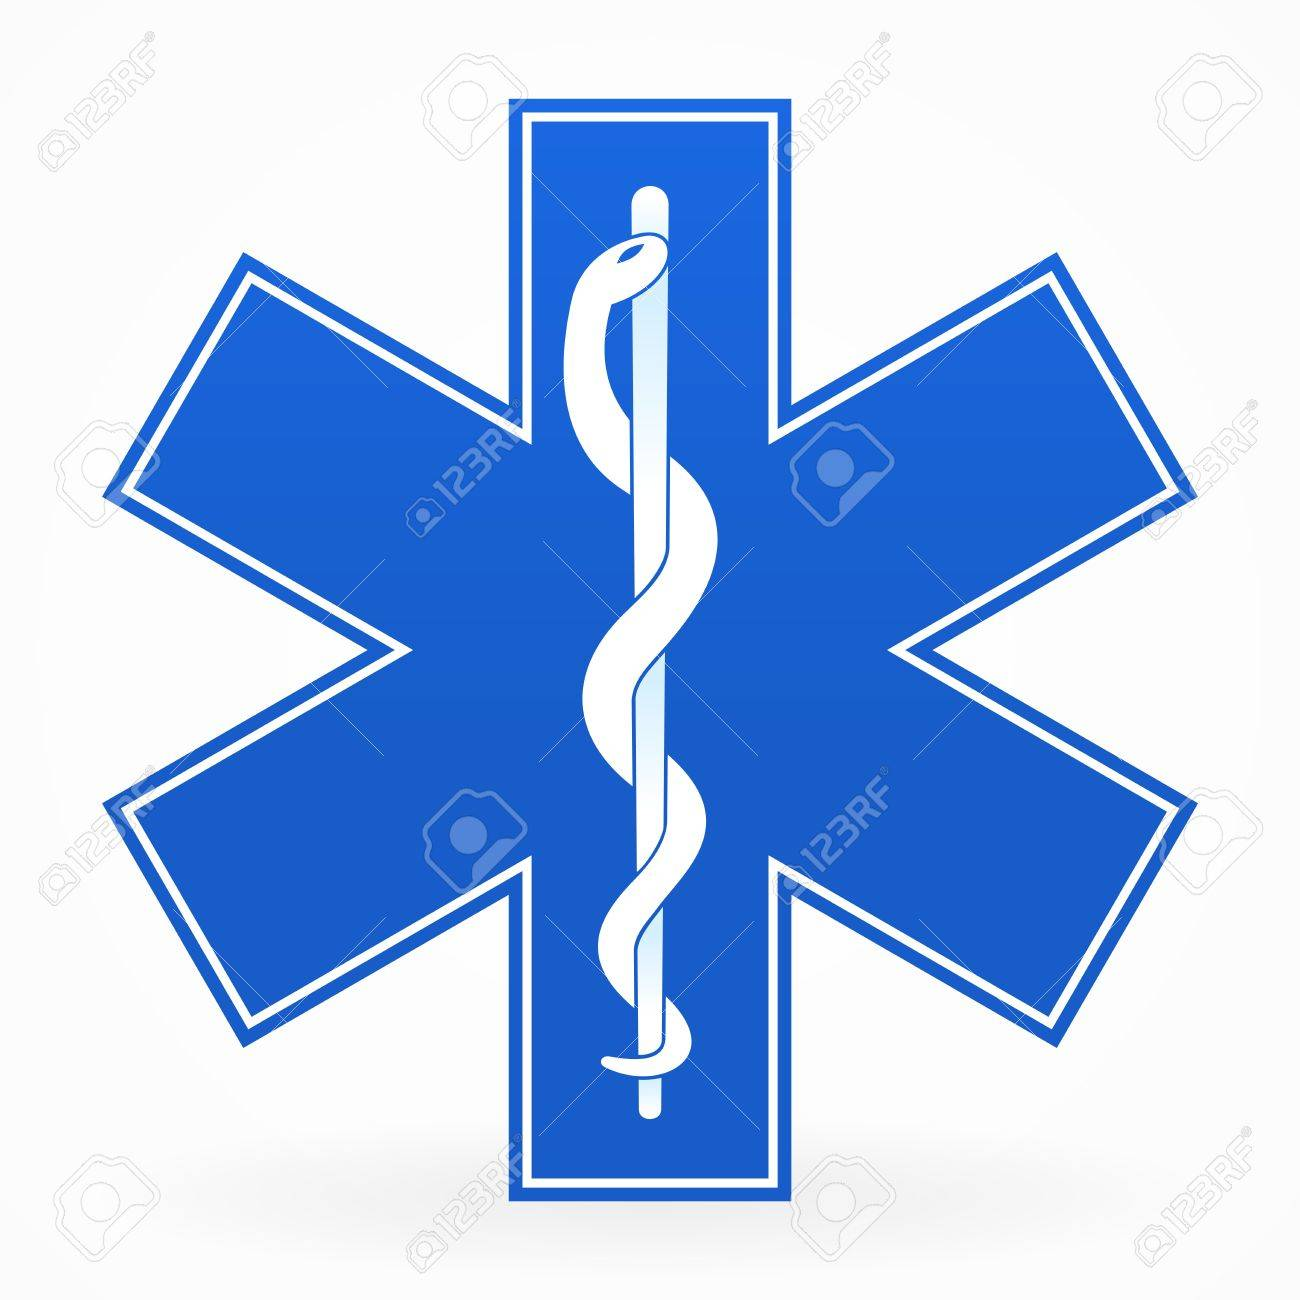 Blue Medical Sign Stock Vector - 12484268